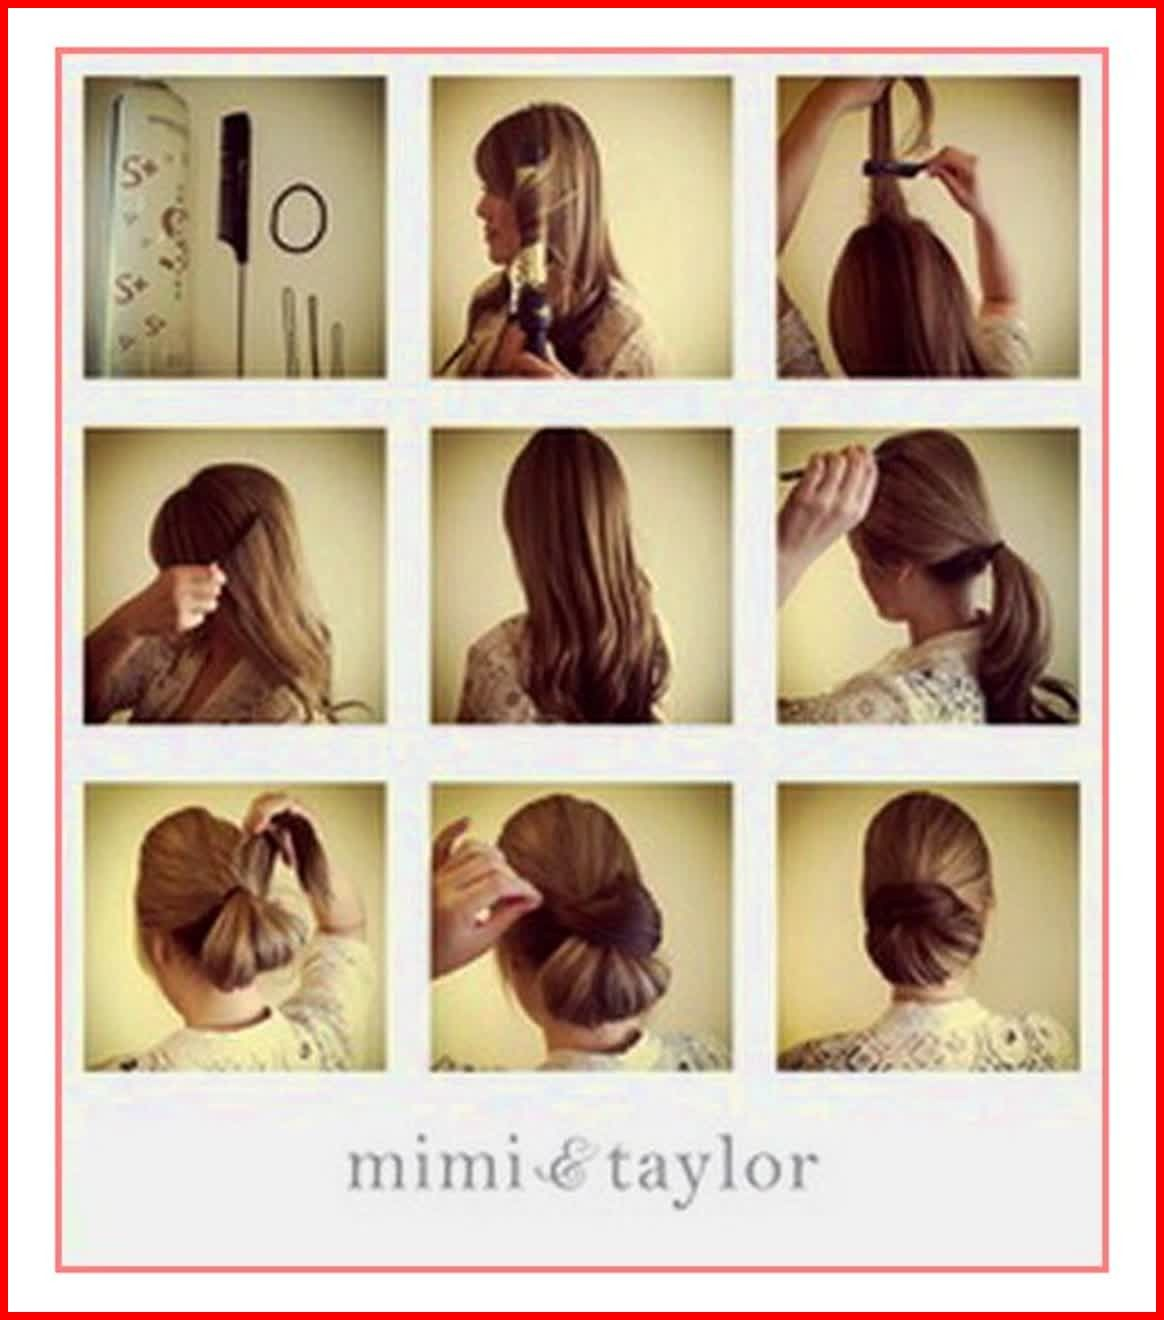 Wwv Hairstylestrends Me Interview Hairstyles Business Hairstyles Long Hair Styles